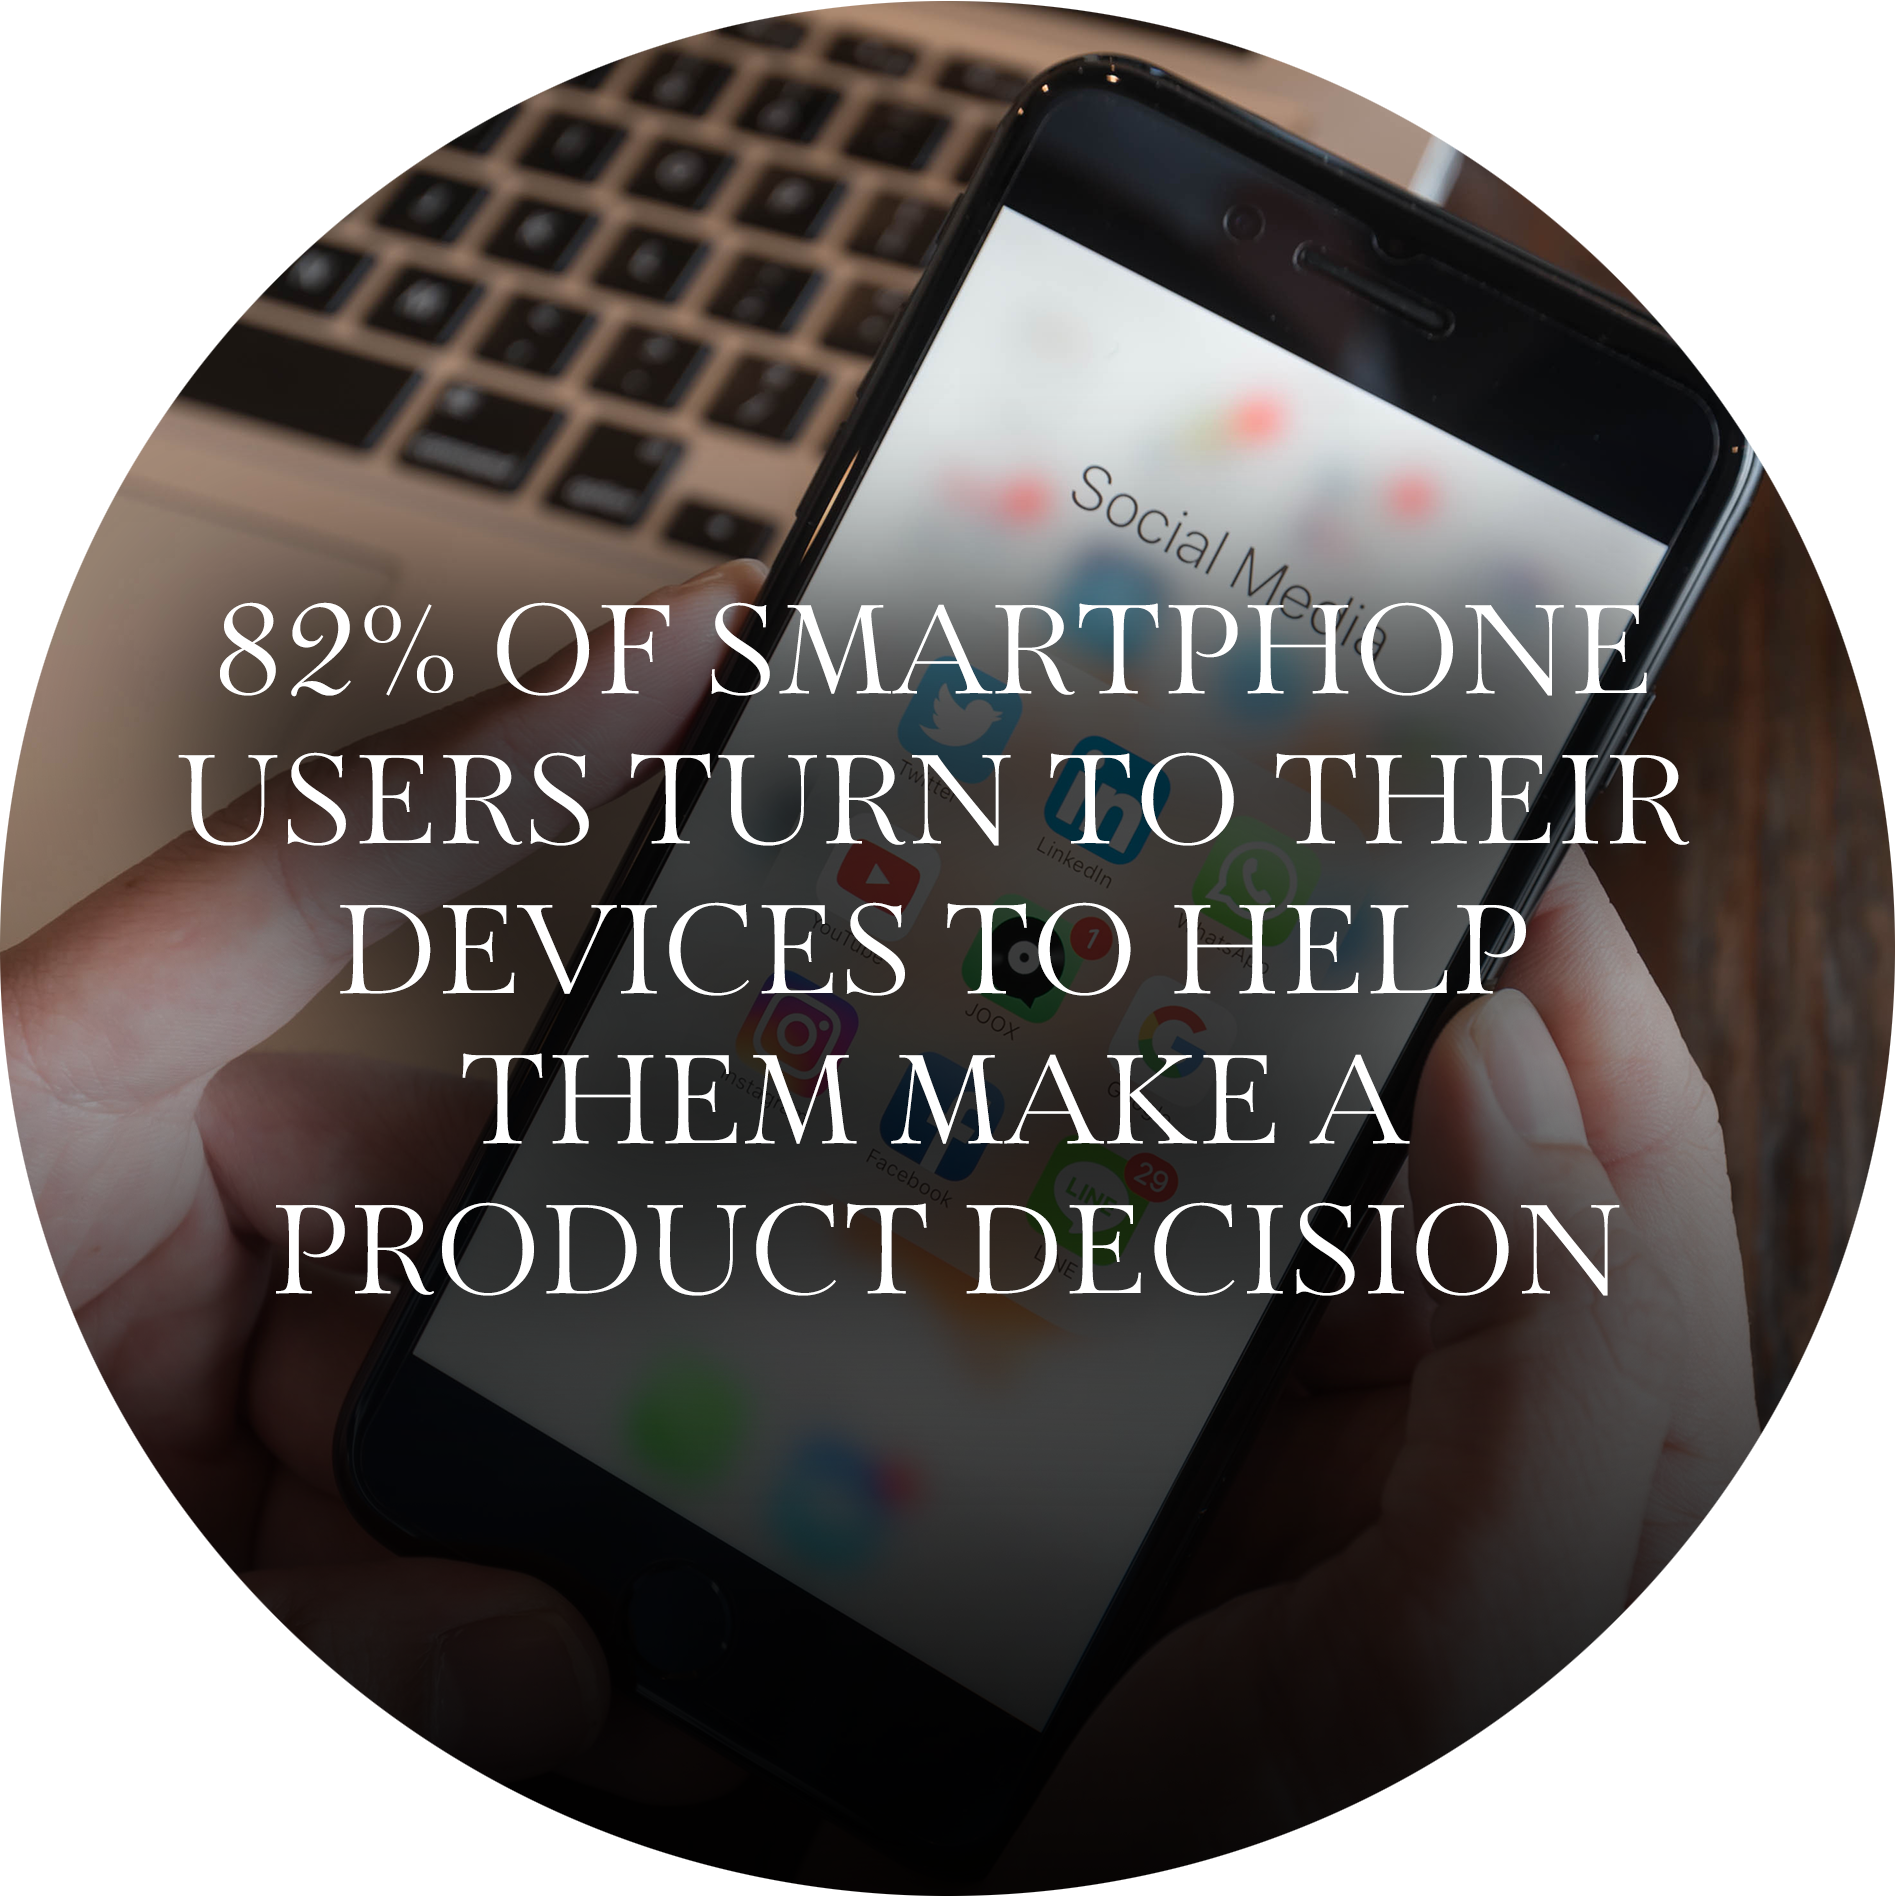 82% OF SMARTPHONE USERS TURN TO THEIR DEVICES TO HELP THEM MAKE A PRODUCT DECISION.